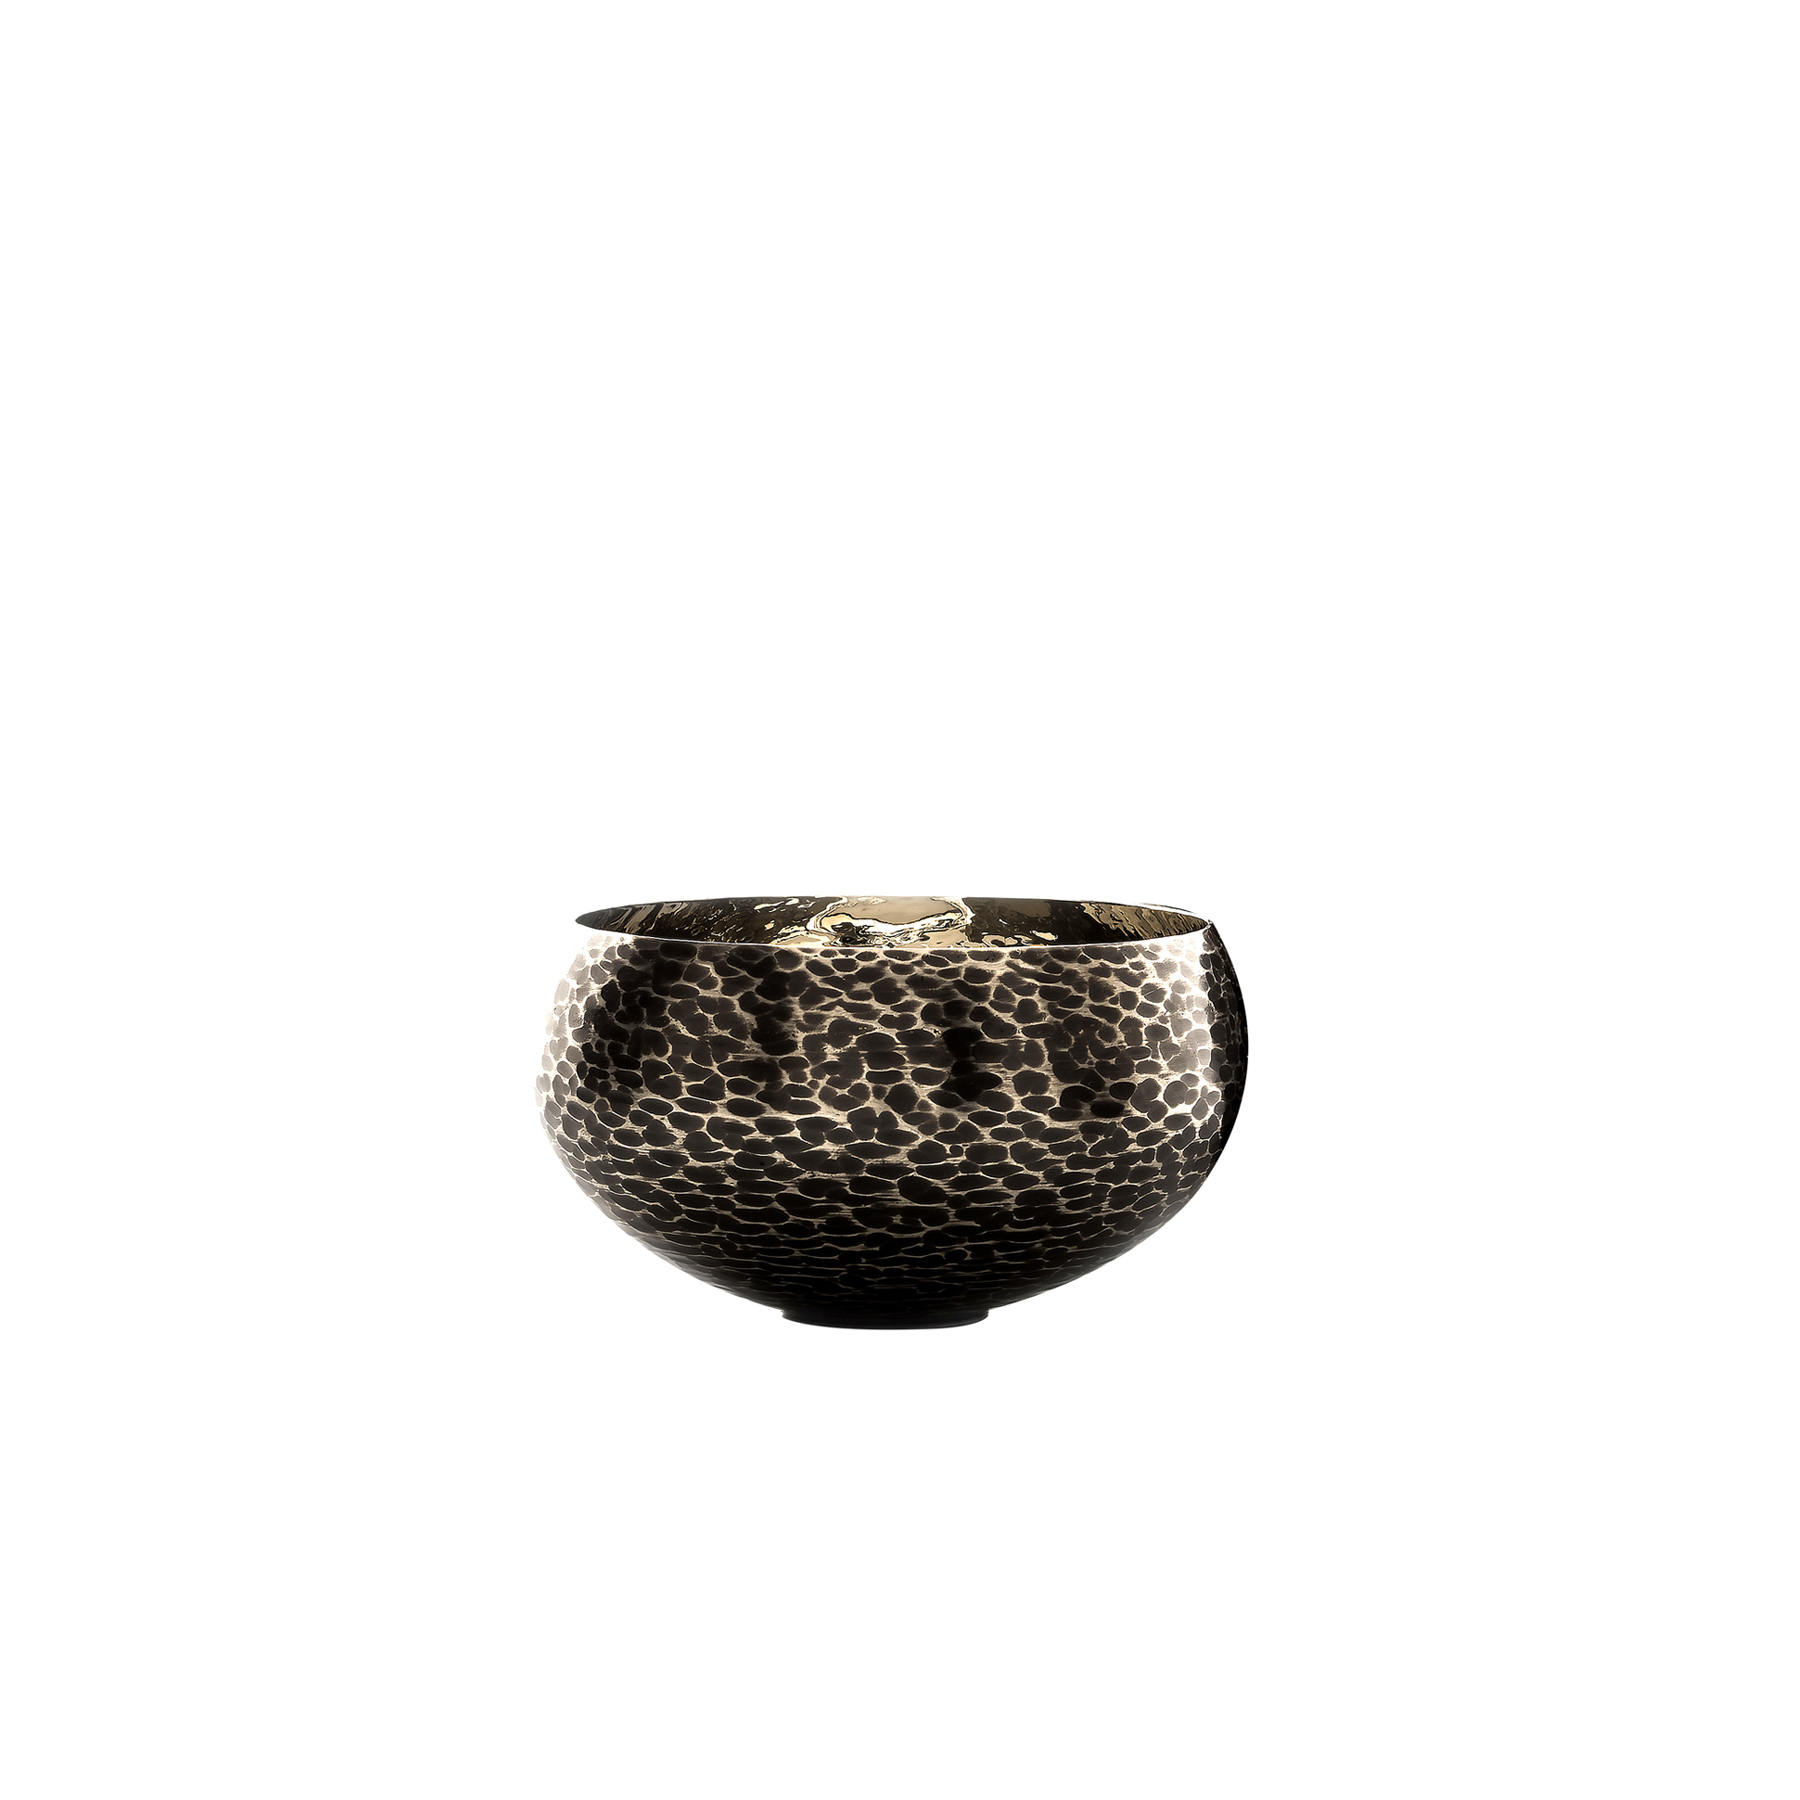 Filicudi Bowl - This large bowl was made of bronze that was given special burnishing, creating unique decorative patterns on its exterior. A very versatile piece of functional decor, this bowl can double as a centerpiece on a dining table and can be used in an entryway to store and display small everyday trinkets. This striking object can be paired with the Filicudi Bowl for a dynamic effect.  | Matter of Stuff